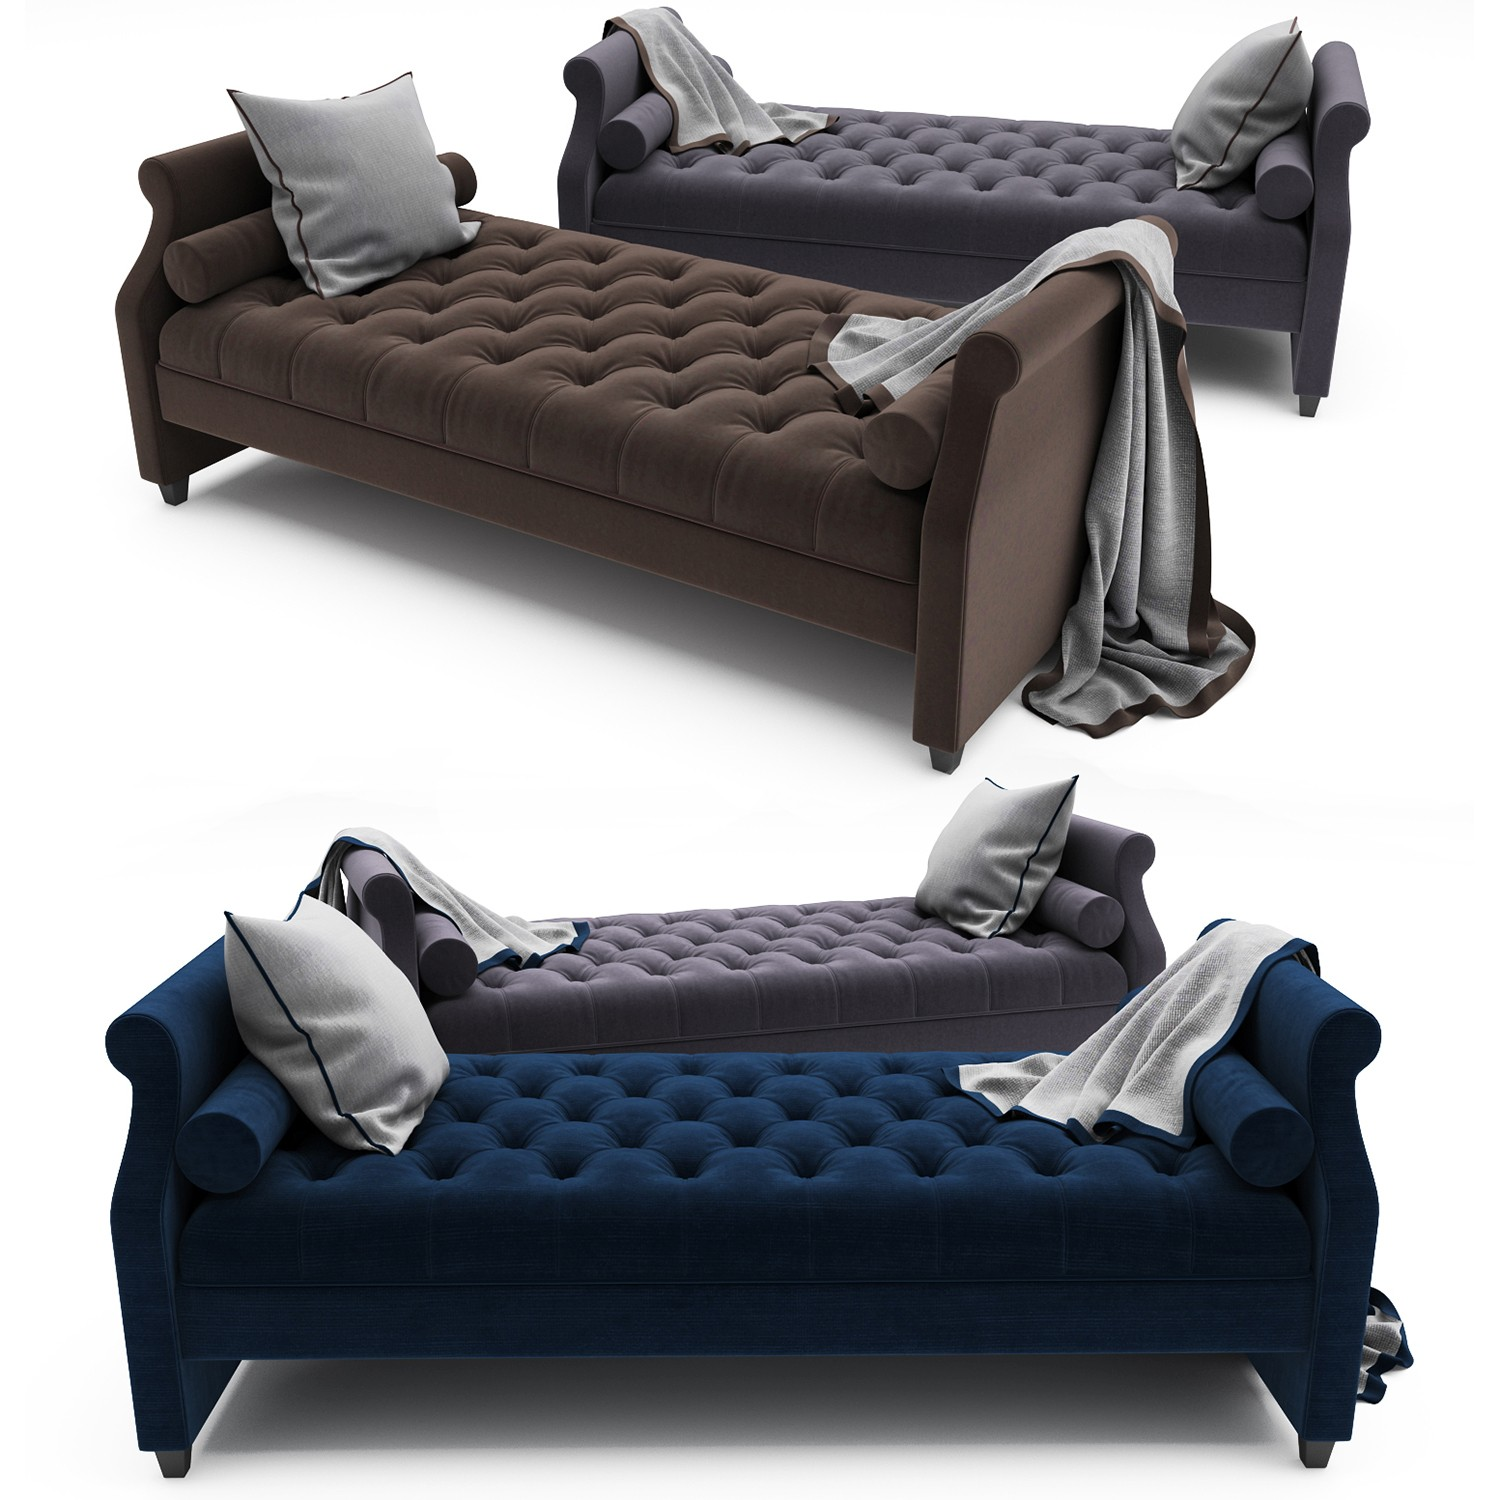 Tufted sofa Bed Stunning Tufted sofa Bed by Doannguyen Architecture